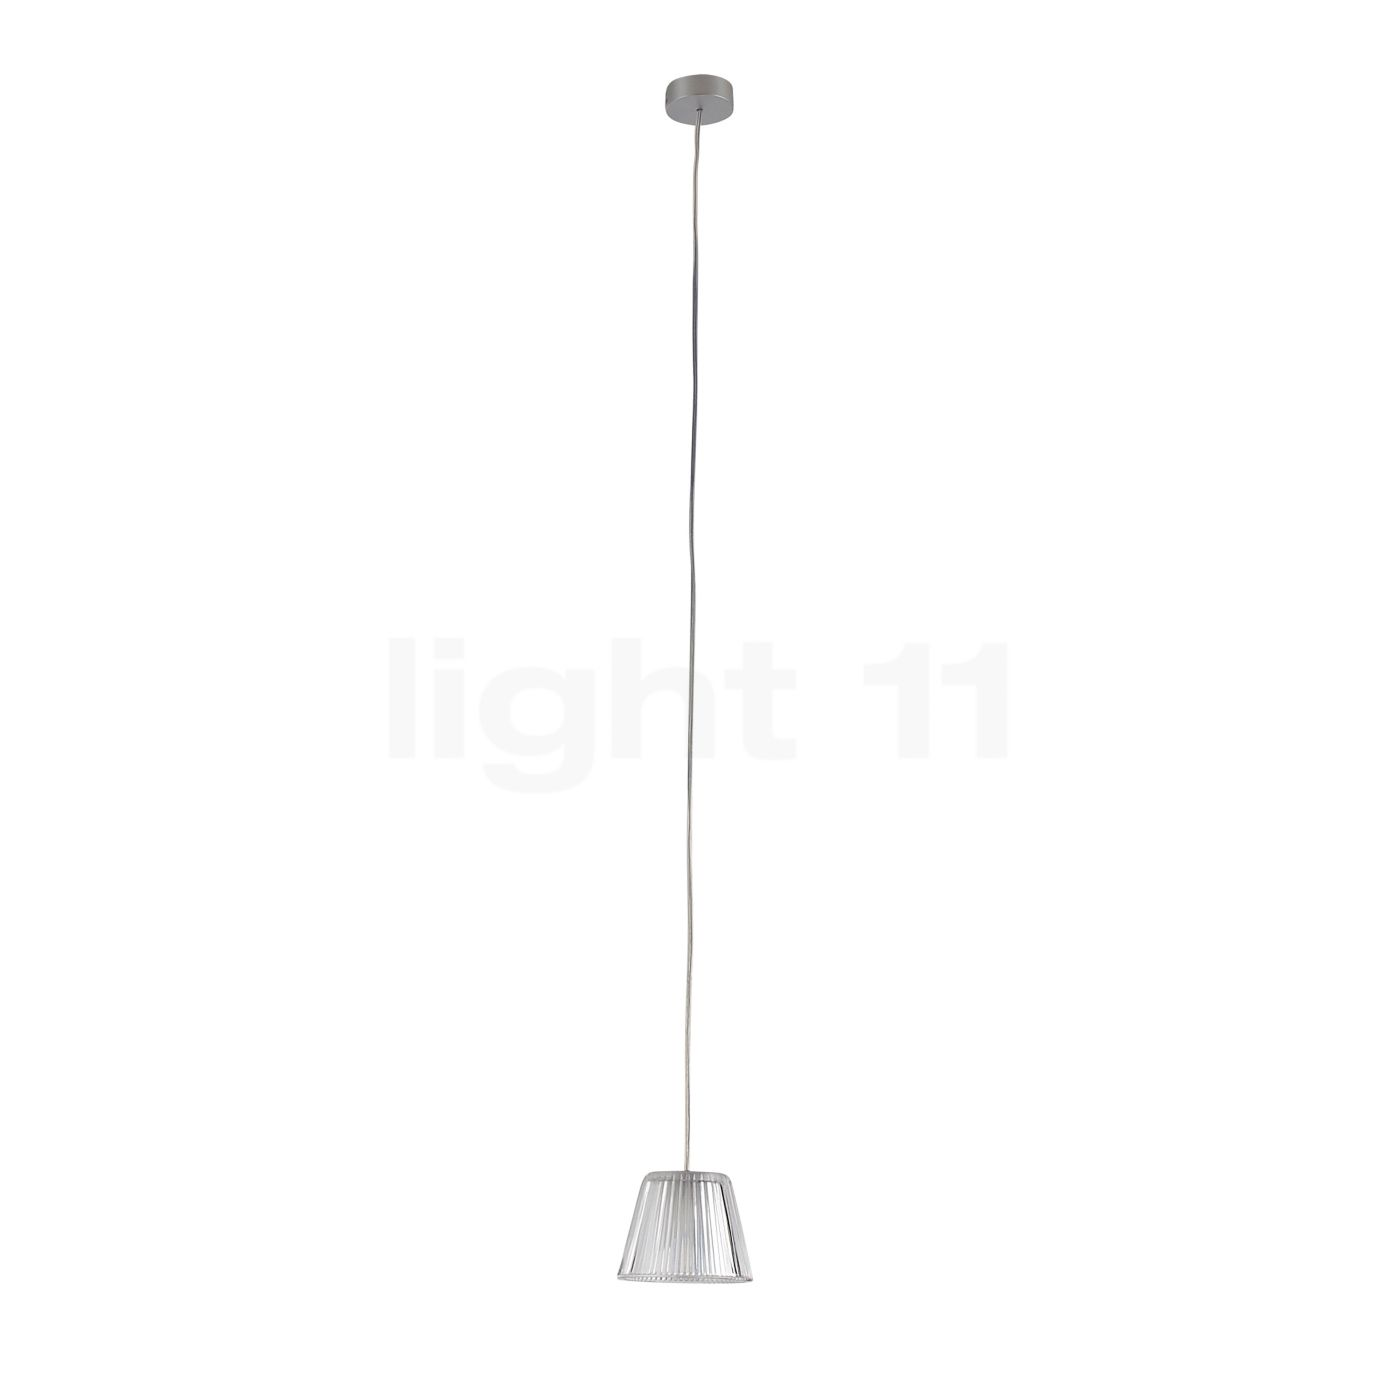 Flos Romeo Babe S Pendant lights buy at light11.eu